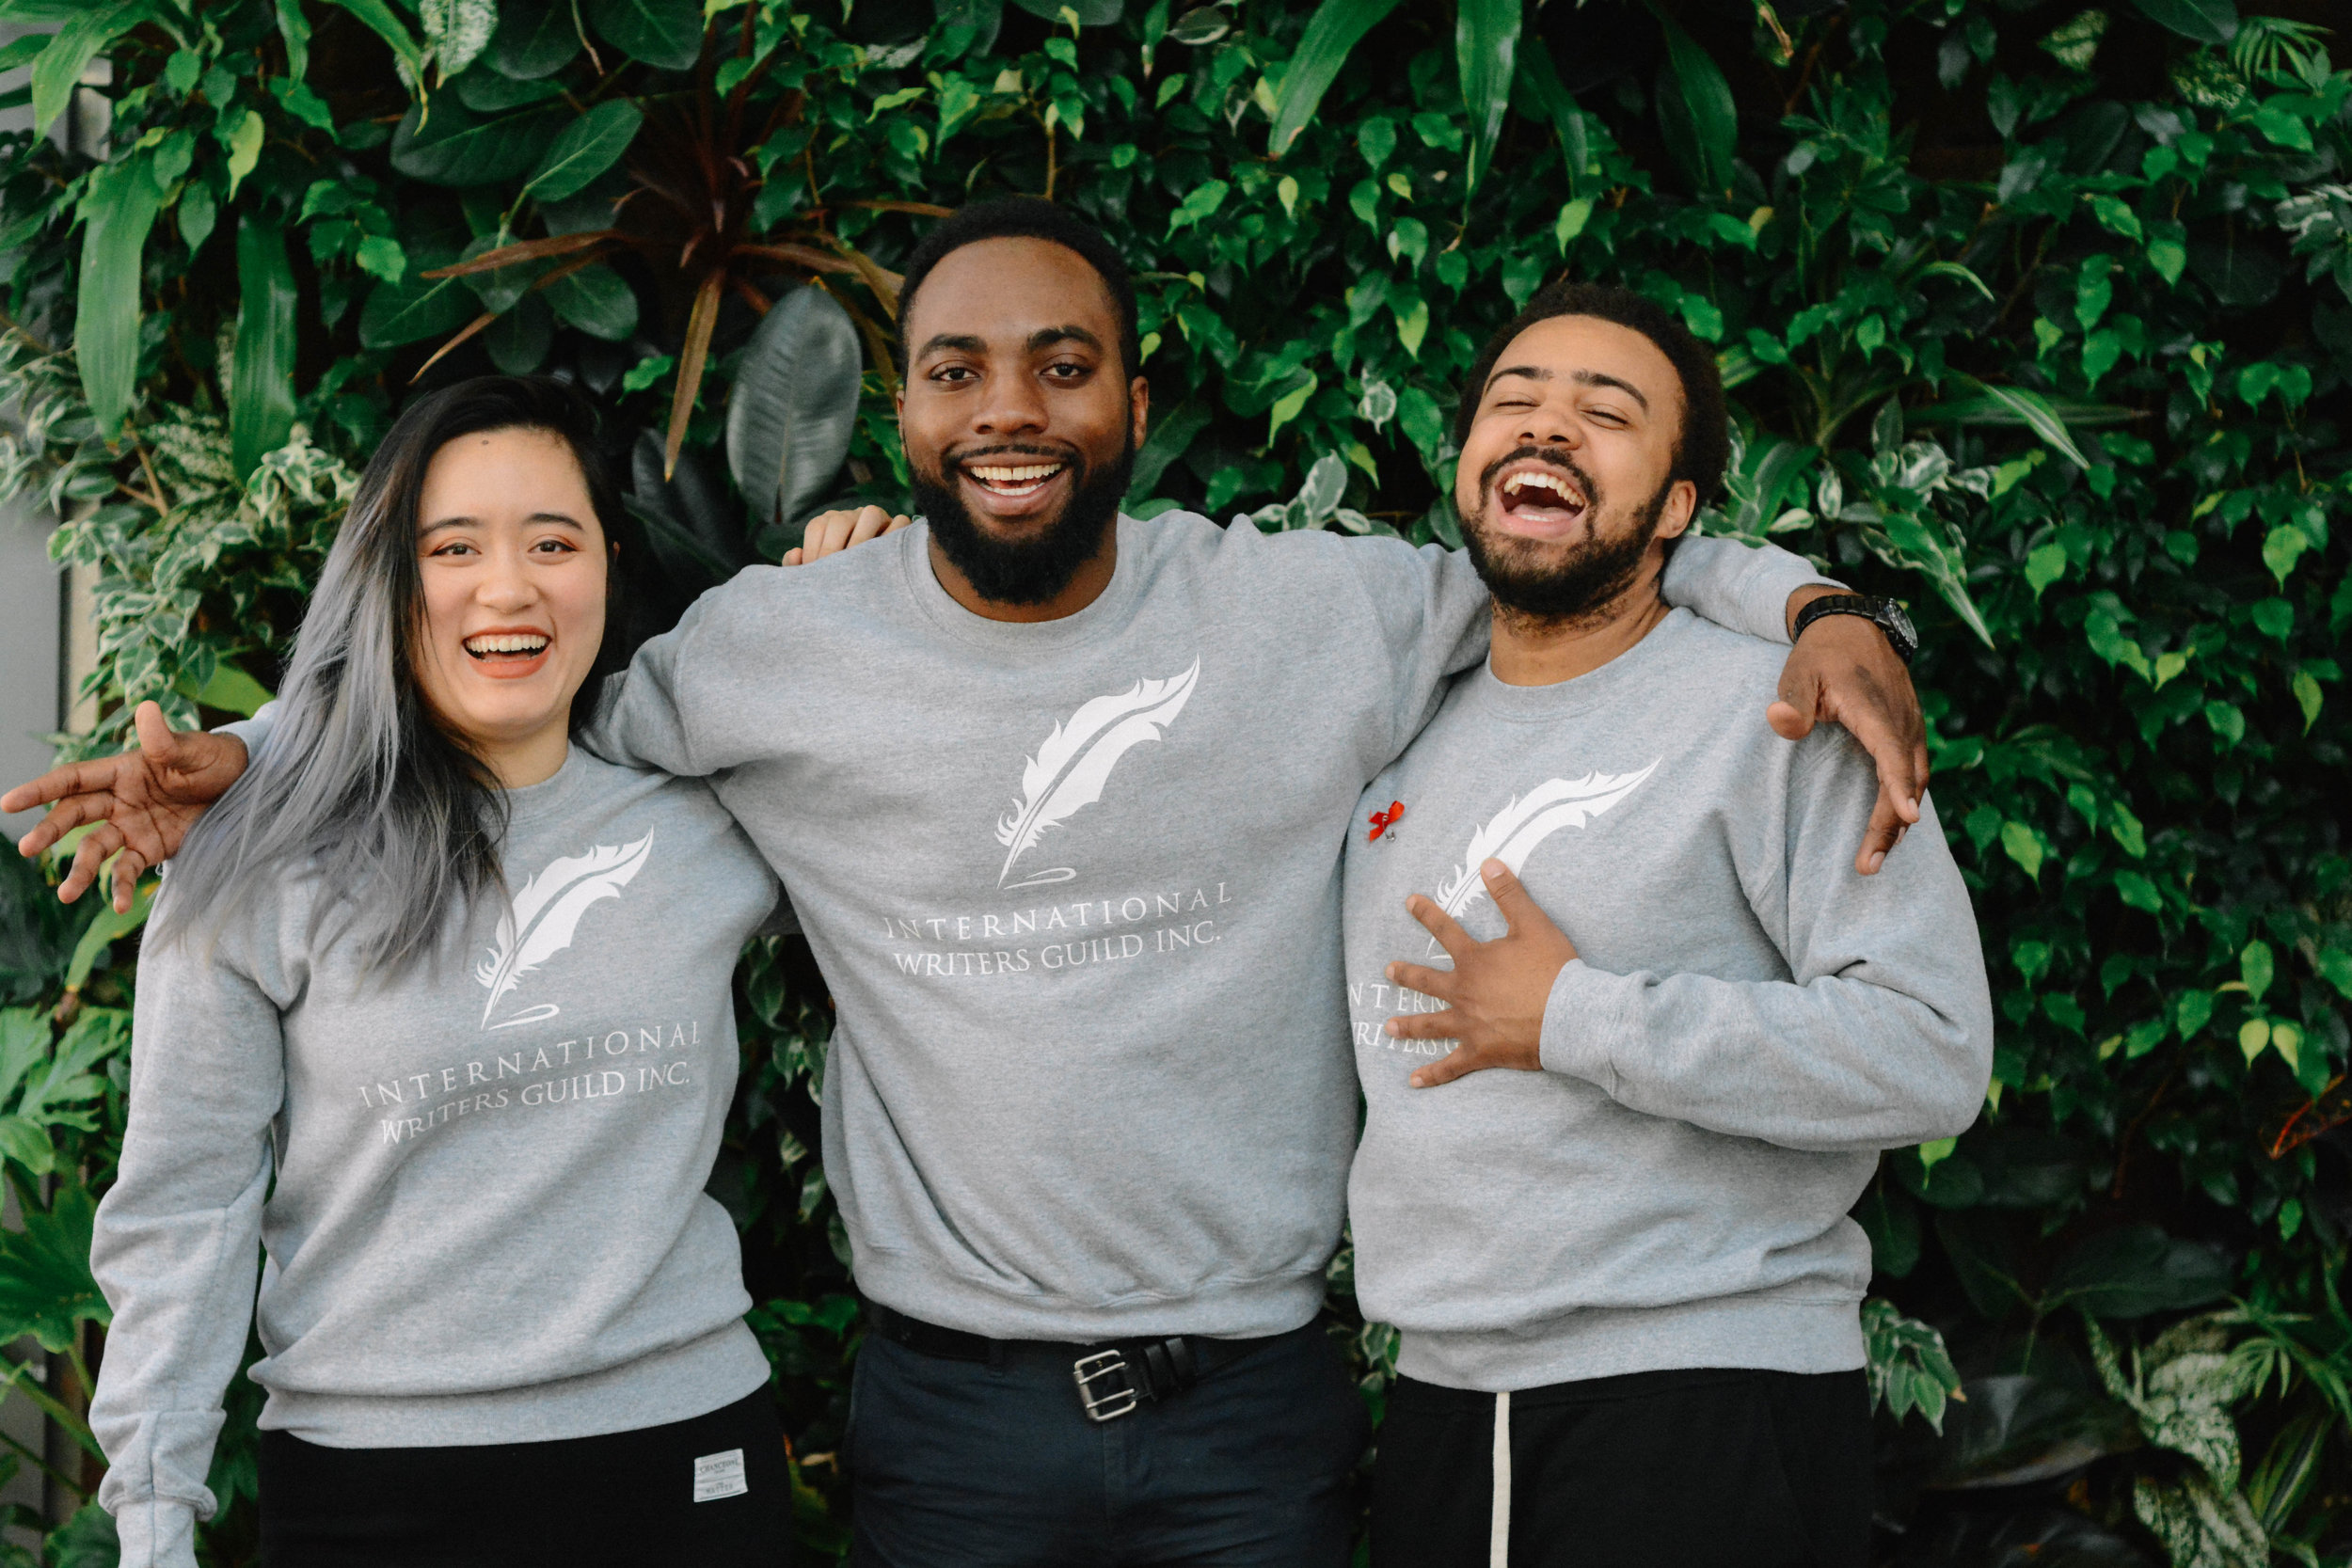 The Guild Poetry - An organization that organizes poetry workshops and showcases to promote youth literacy and empowerment in Detroit.XIAO BIN PAN, WILLIAM ROYSTER, JUSTIN GORDON